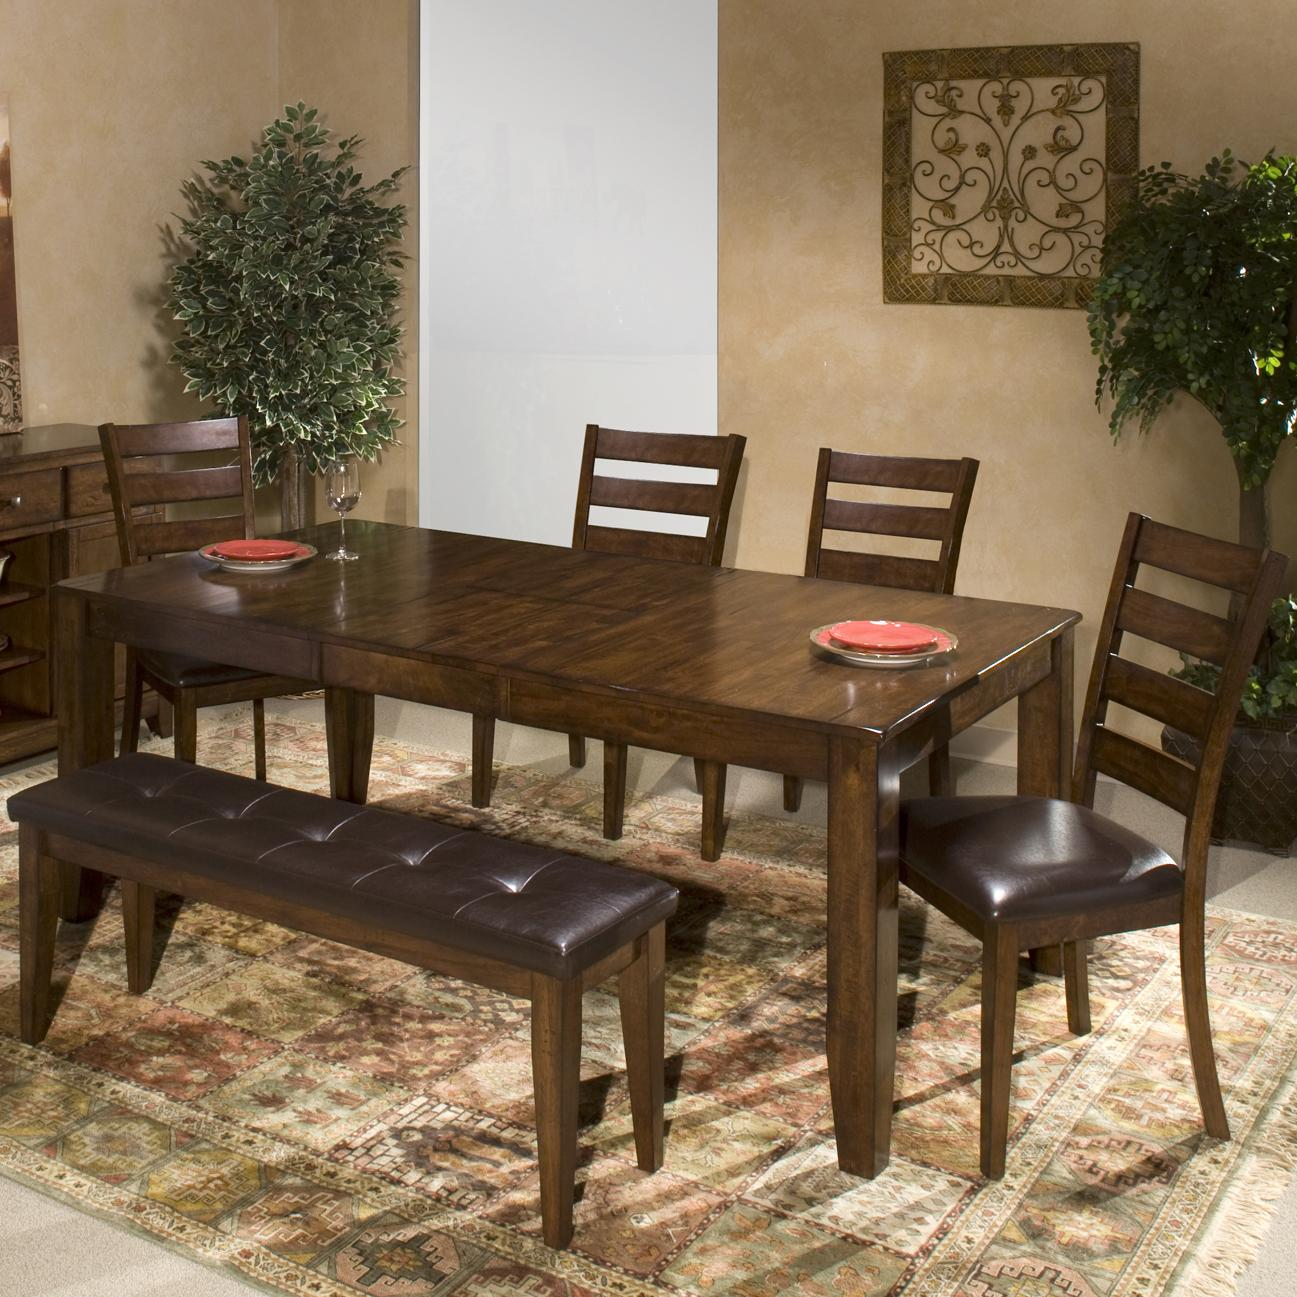 6 piece mango wood dining room set by intercon wolf and for Dining room sets 6 piece